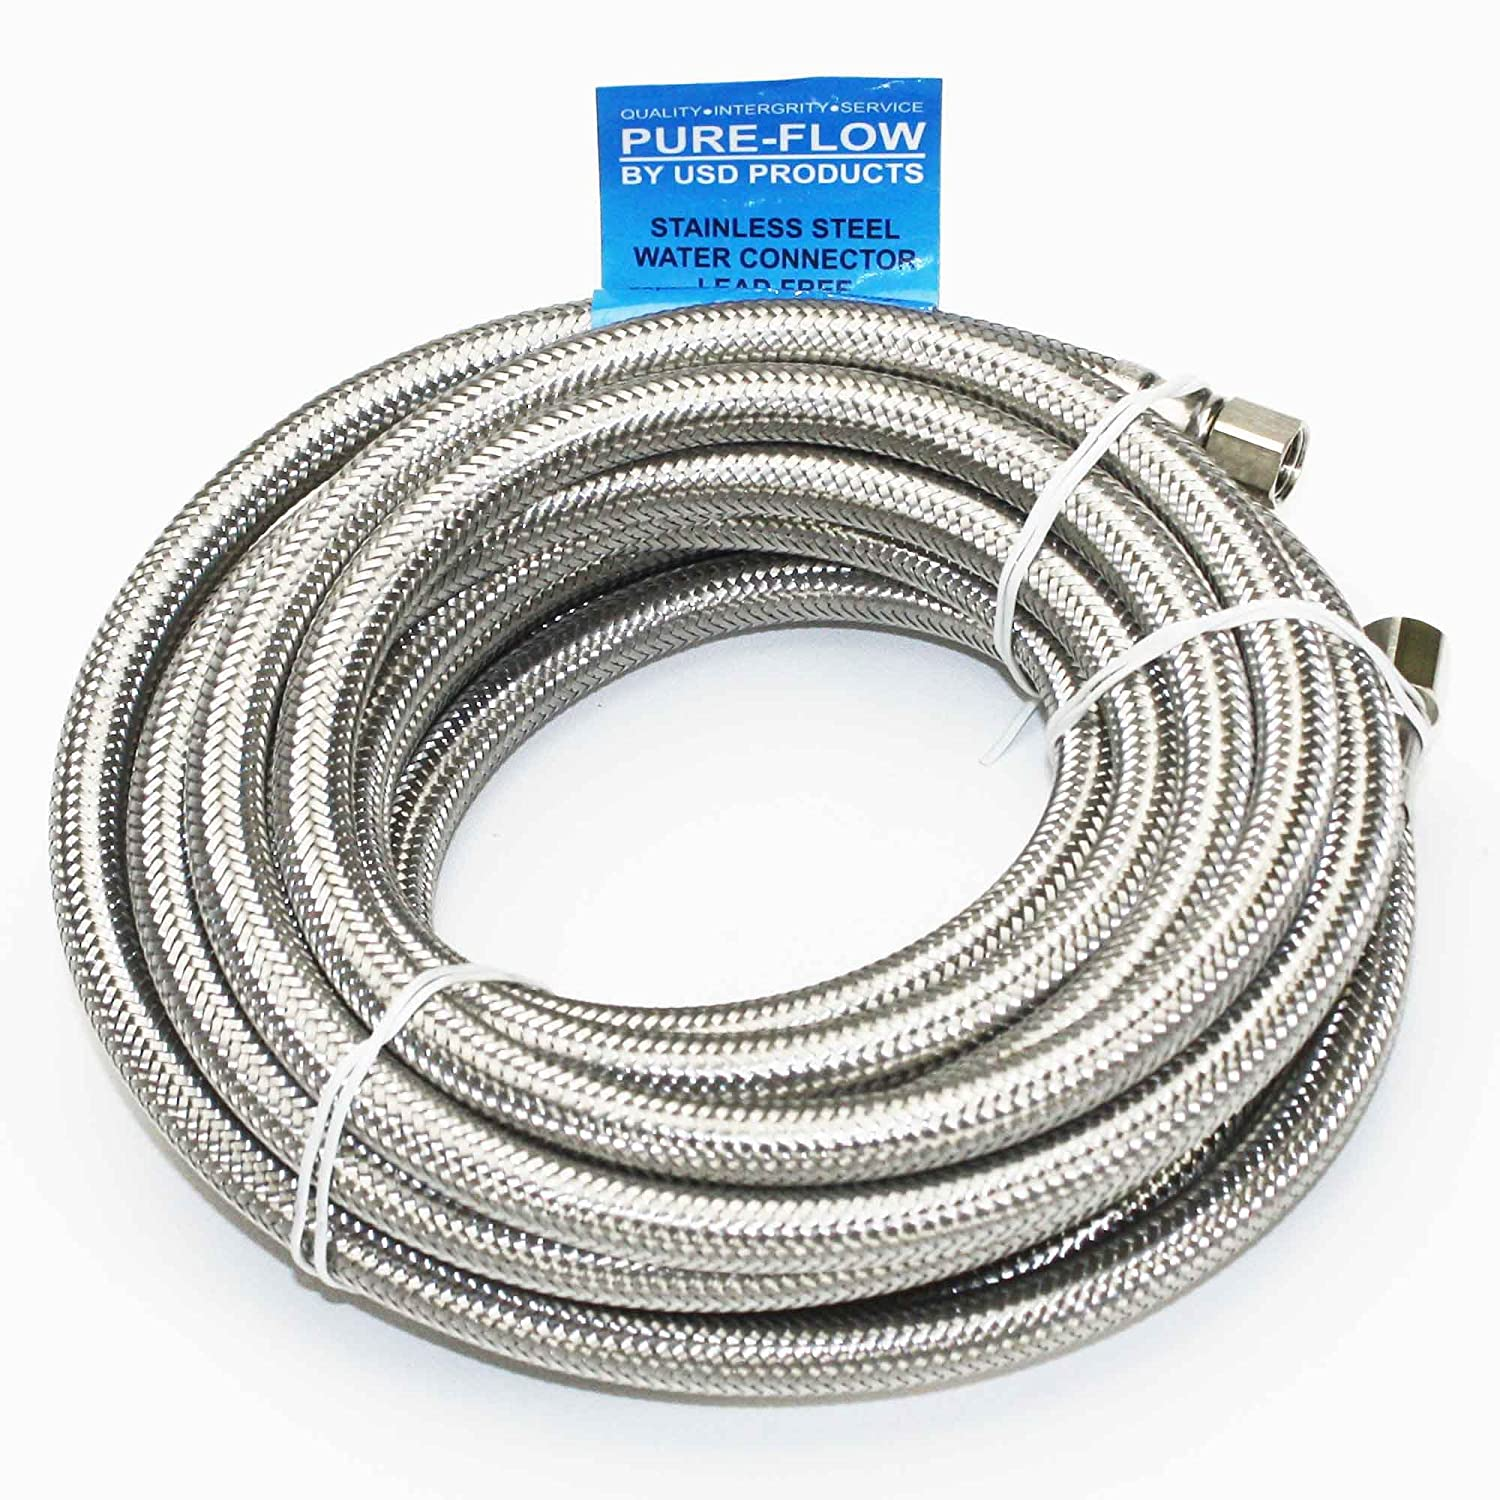 "Universal Stainless Steel Braided Water Line | 20' Length | 1/4"" Connection"